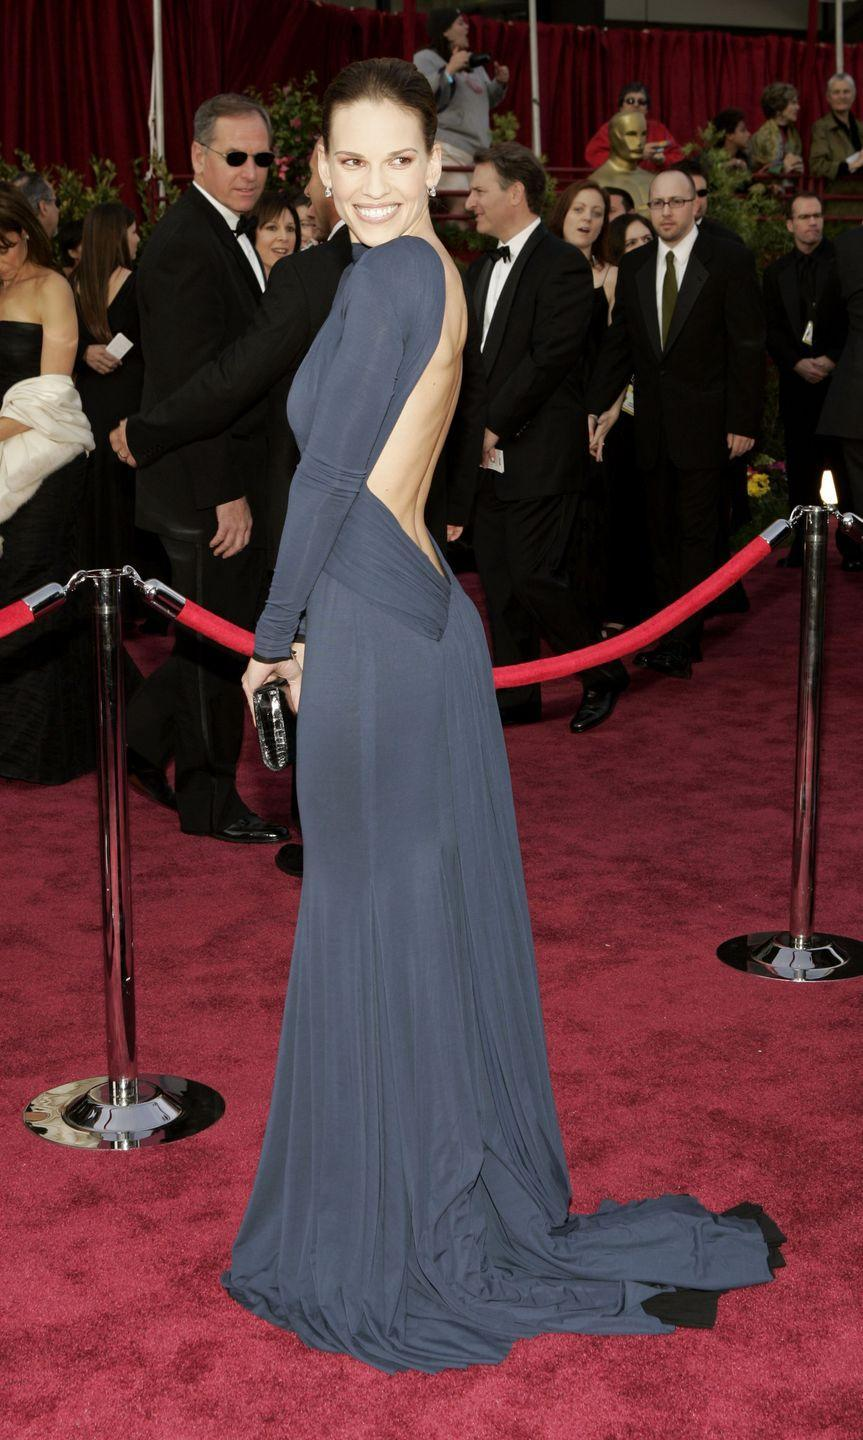 <p>Who could ever forget this daring Guy Laroche dress? The actress nailed her over-the-shoulder poses on the red carpet that night to emphasize the backless number. She also picked up the Best Actress Oscar for her role in <em>Million Dollar Baby</em>. </p>